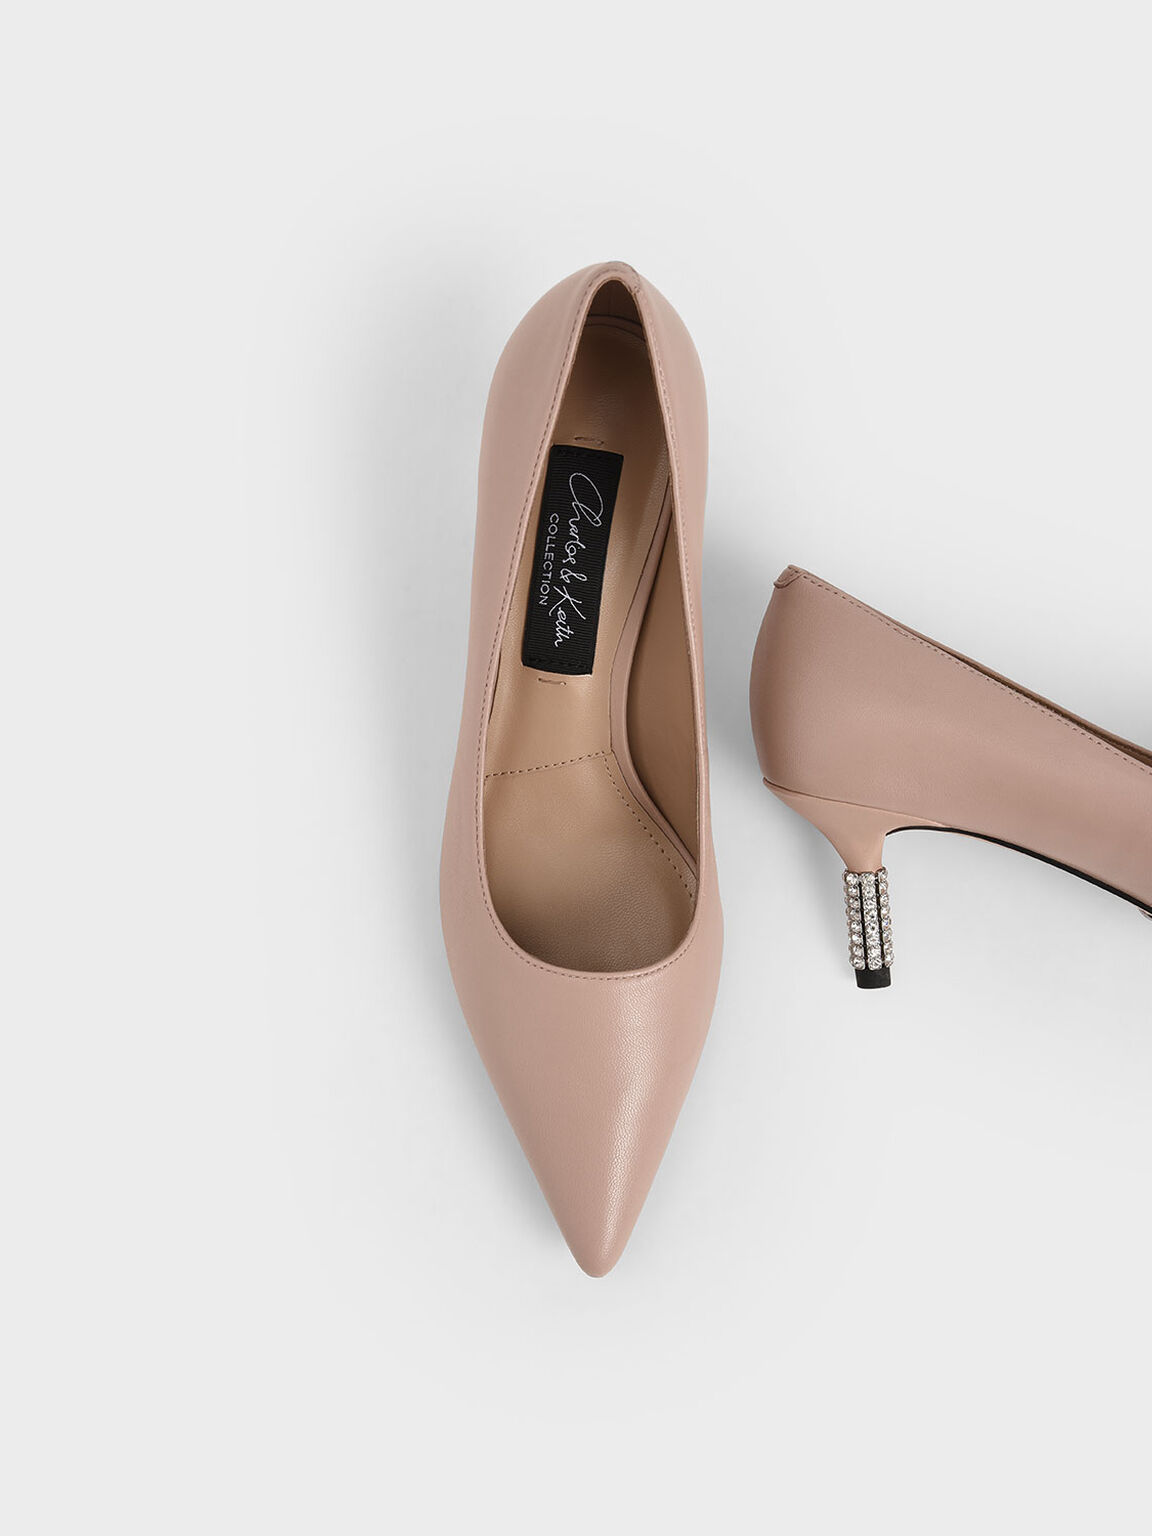 Leather Embellished Heel Pumps, Pink, hi-res